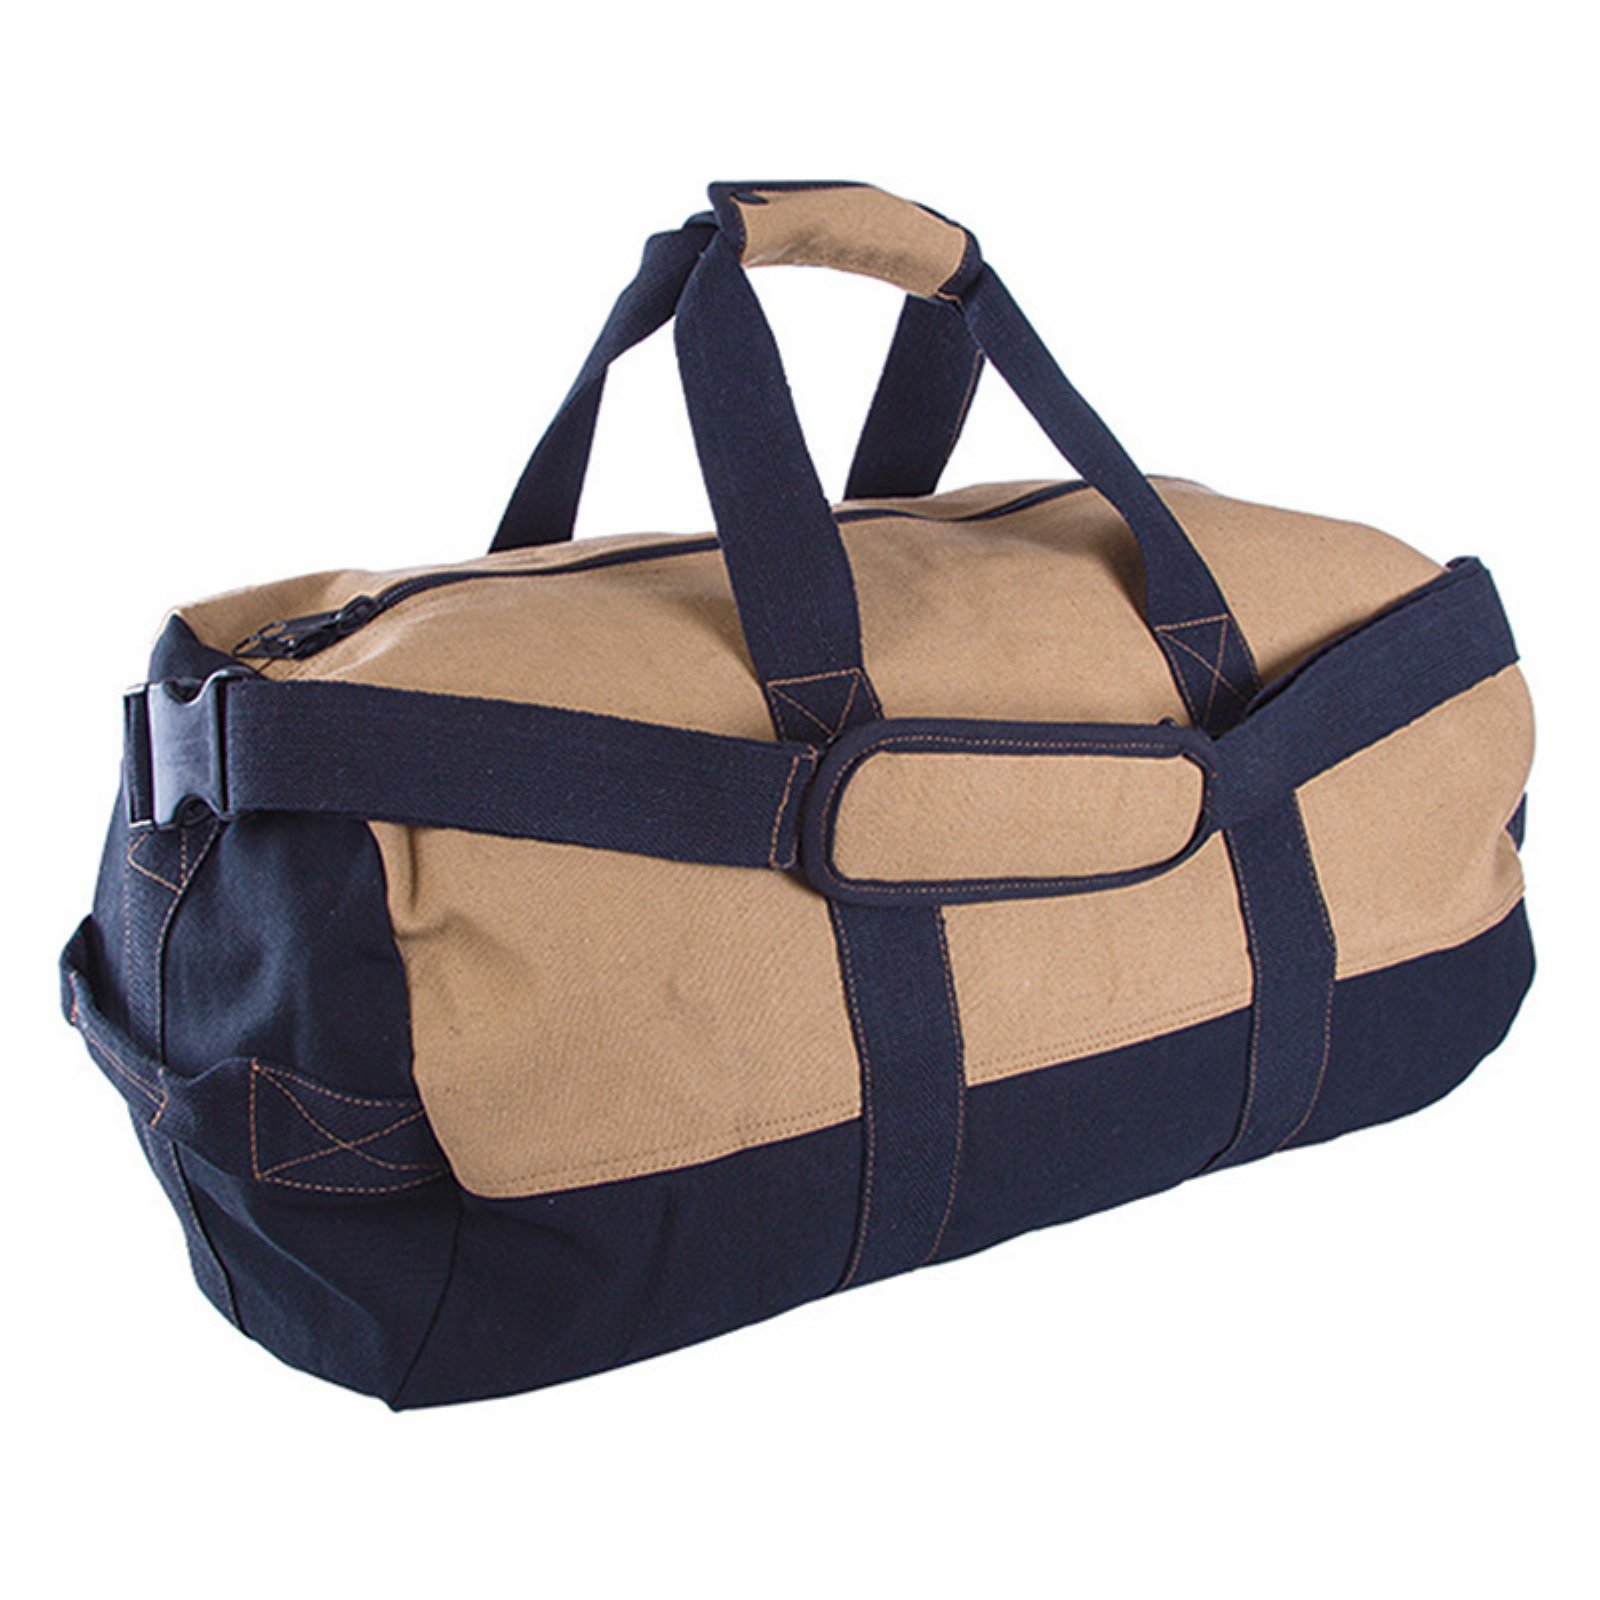 "Duffle Bag with Zipper, 2-Tone, 14"" x 24"" by Generic"